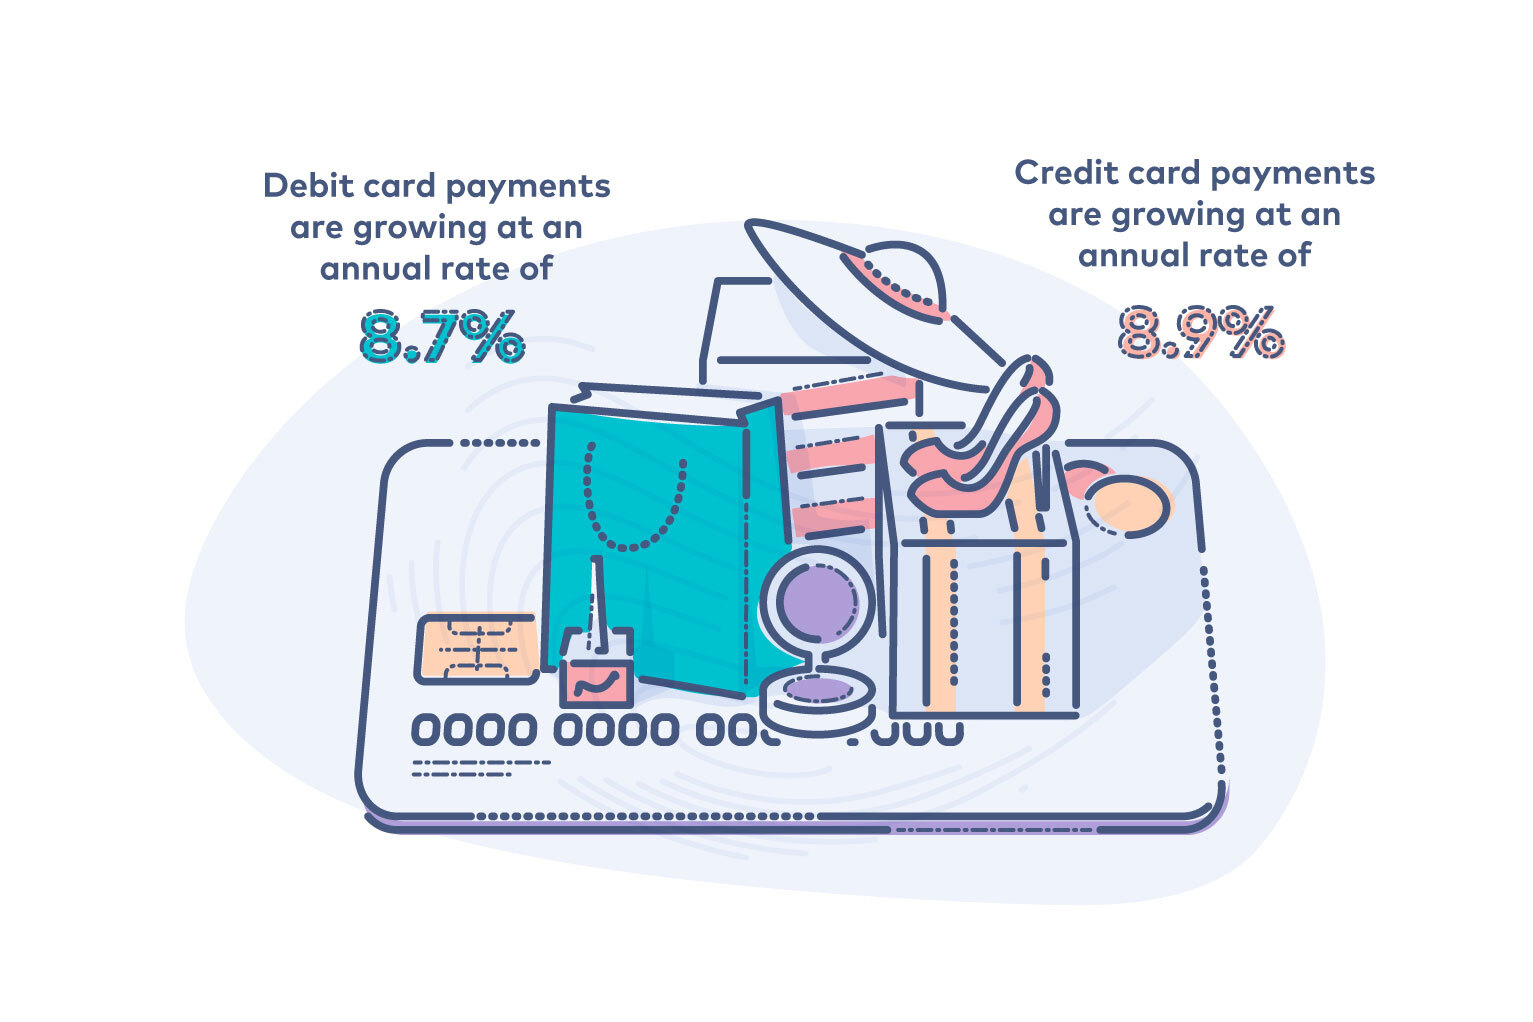 Merchant Services - illustration showing growth of retail debit card payments by 8.7 annually and credit card payments at a rate of 8.9% annually.